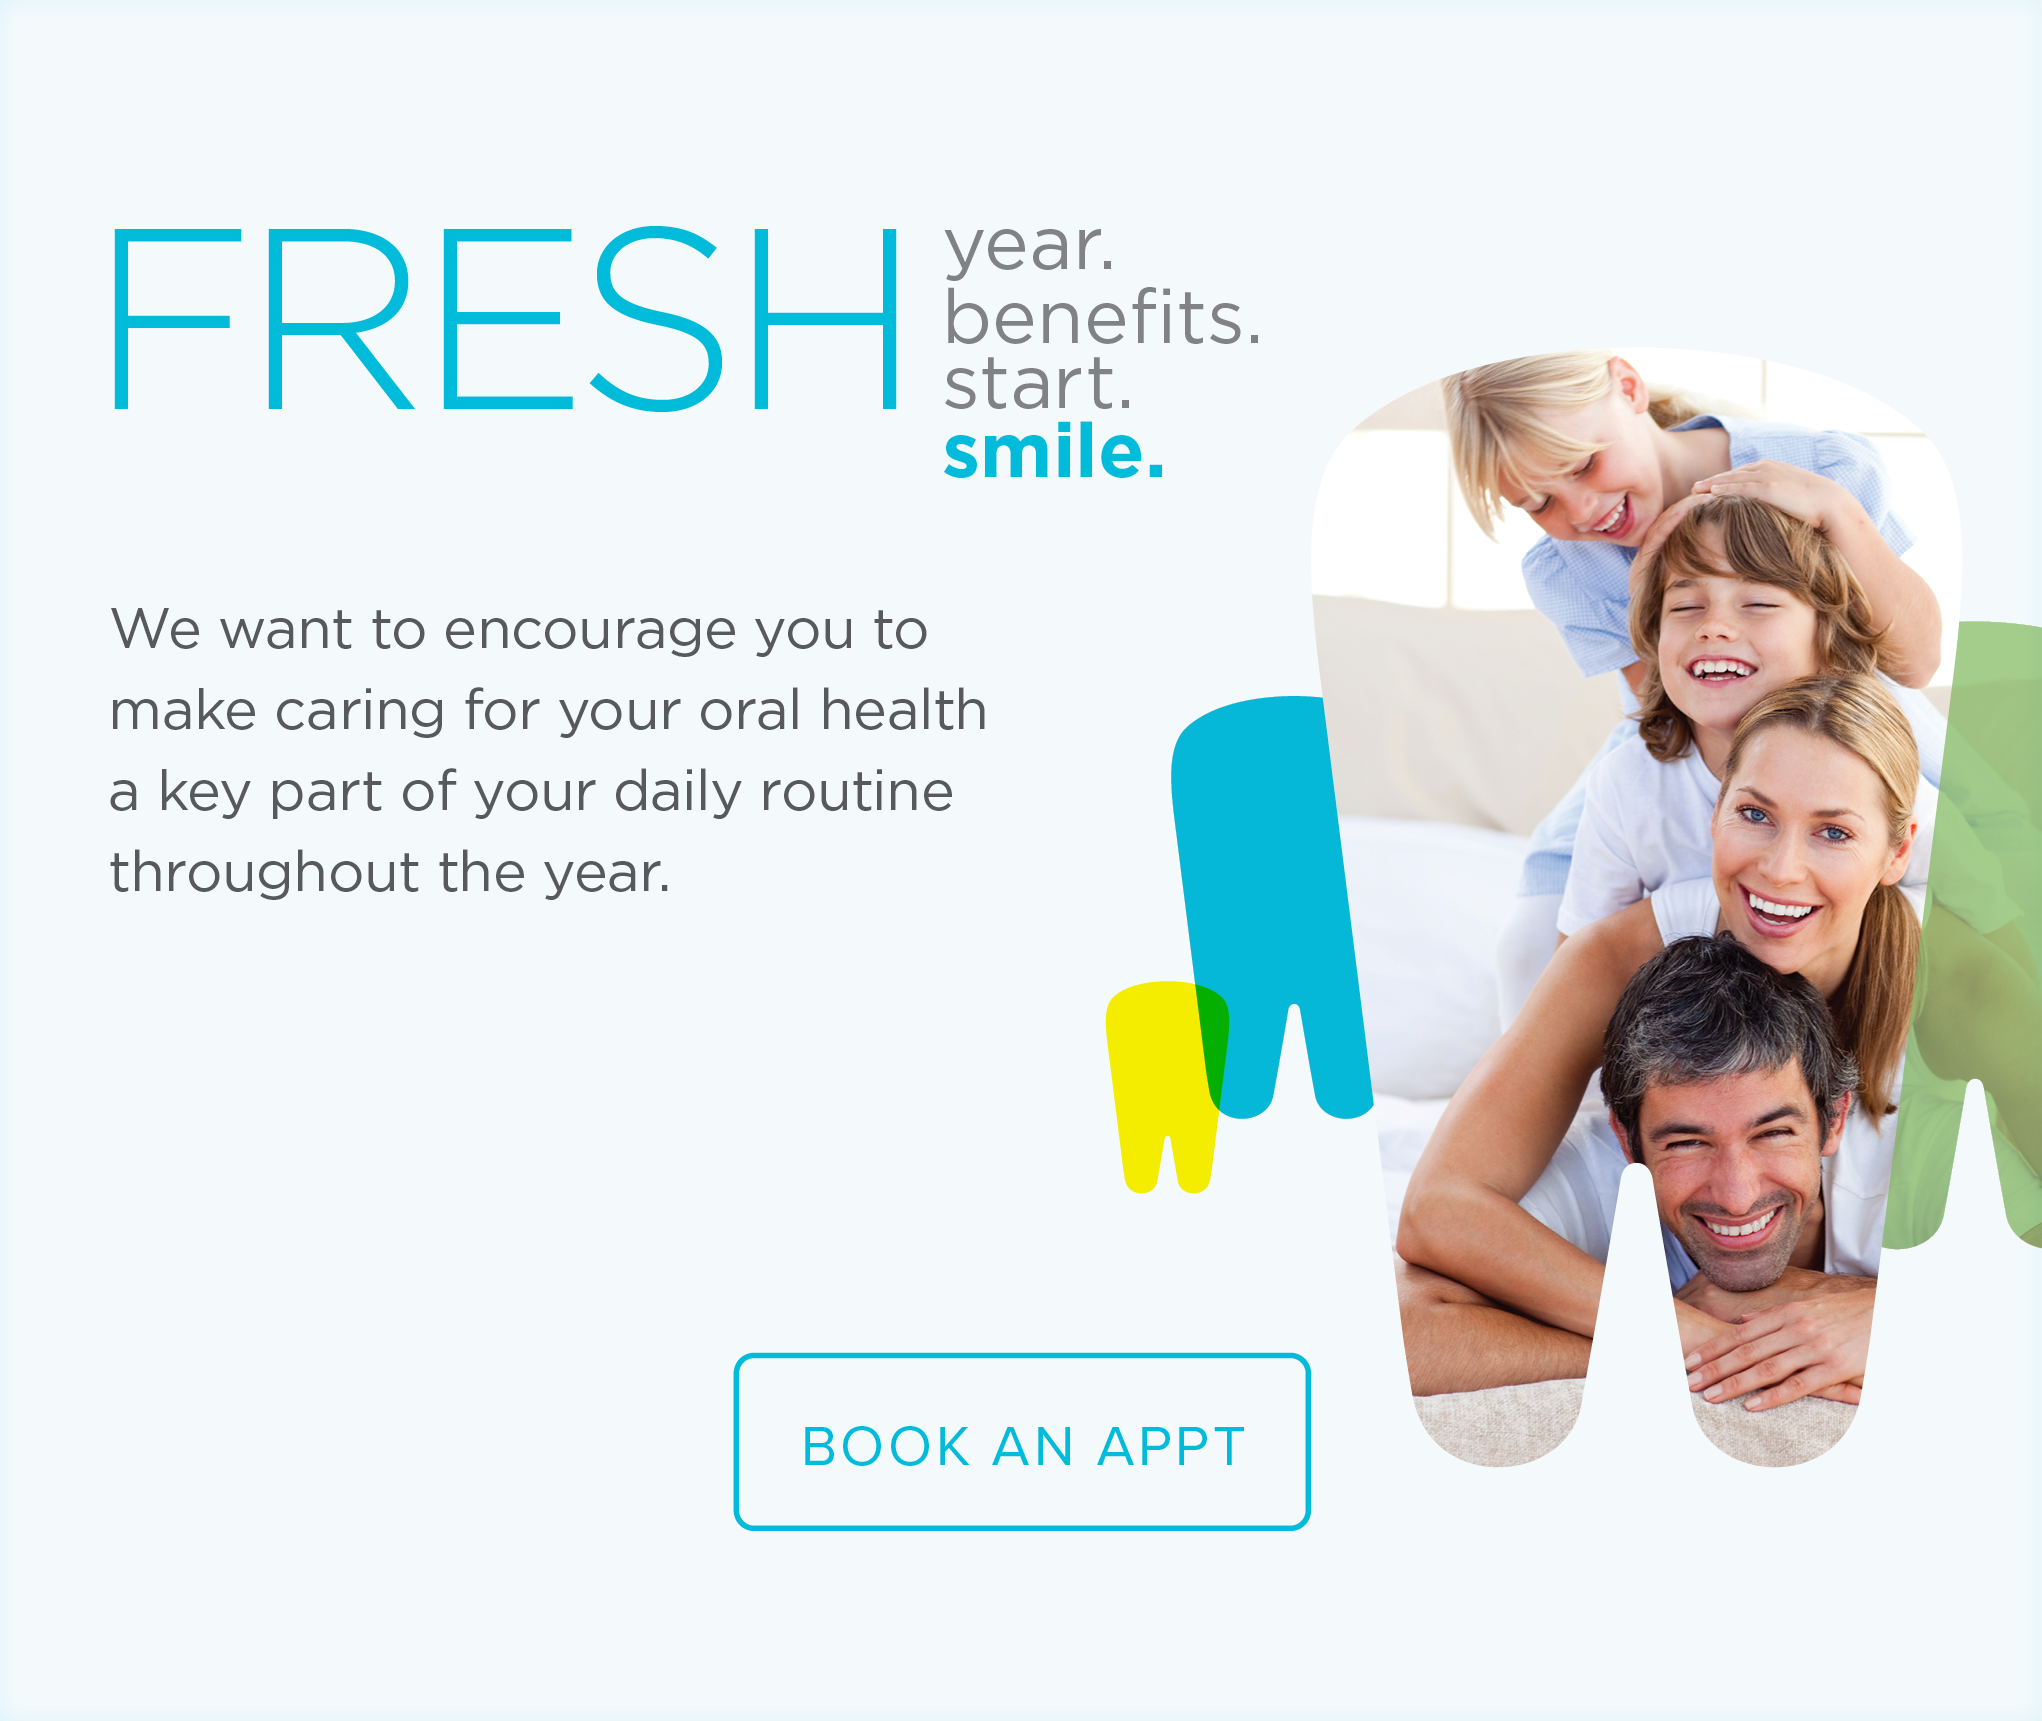 PB Smiles Dentistry - Make the Most of Your Benefits